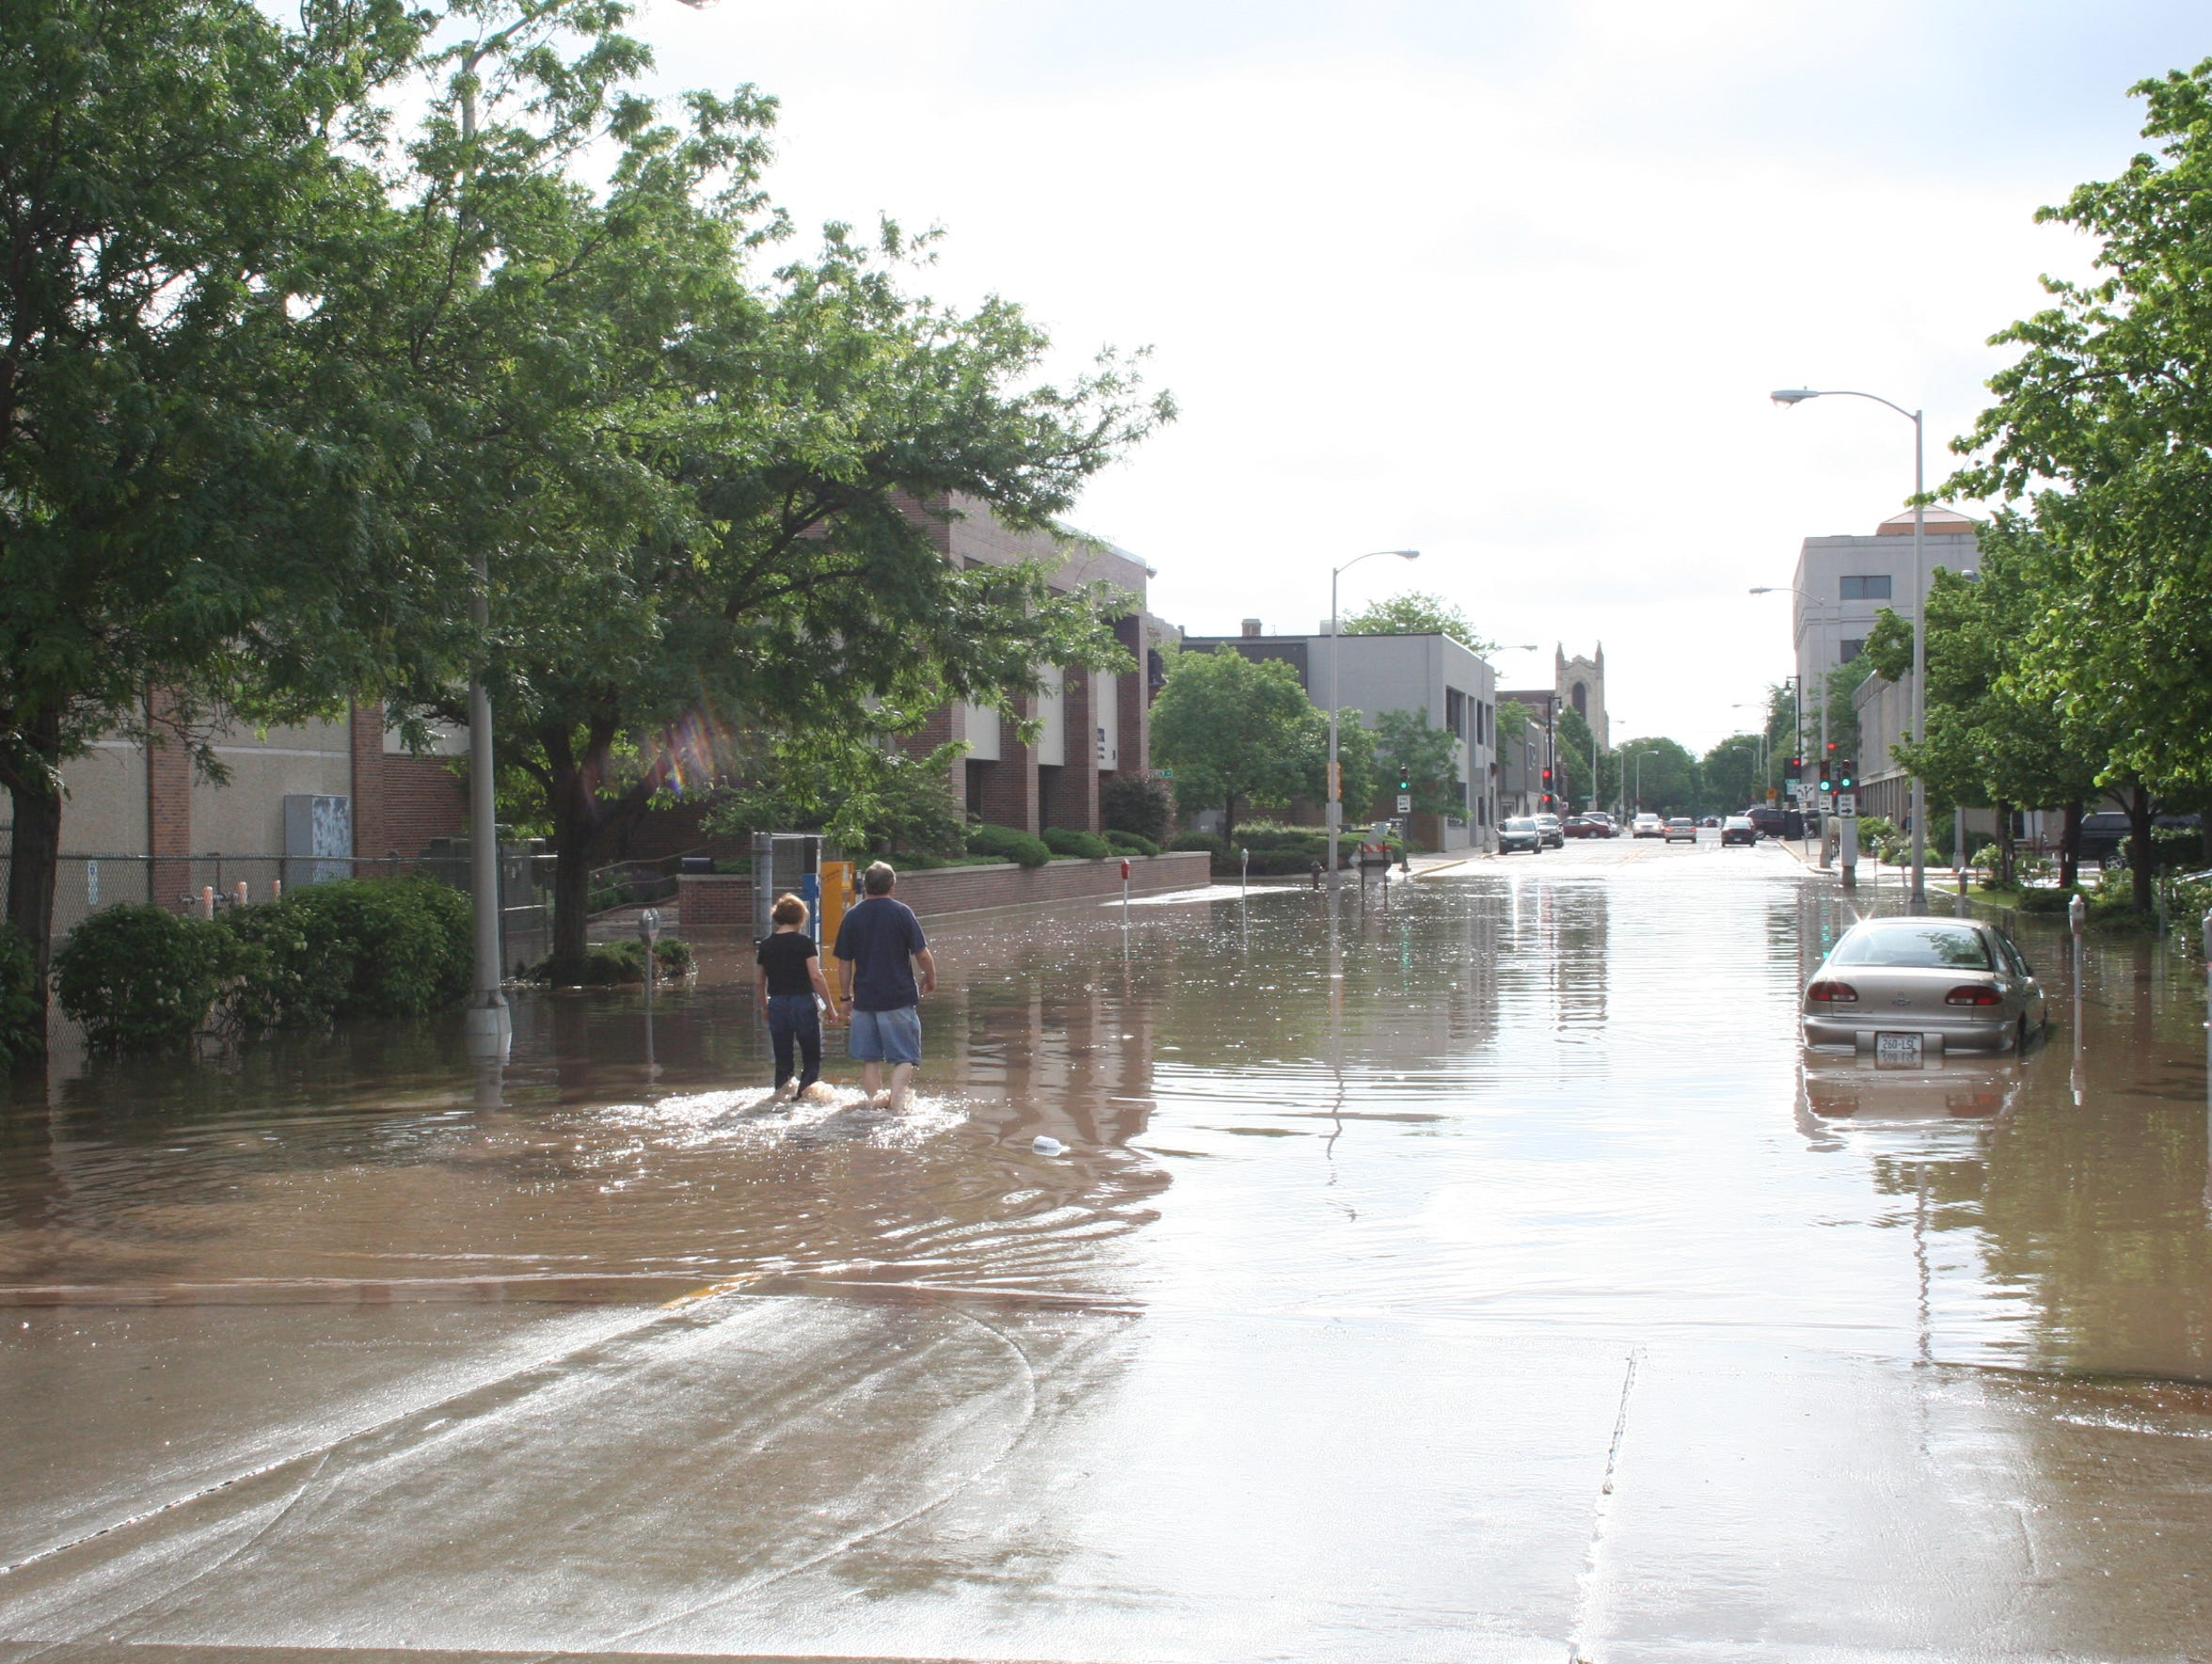 People wade through the flood waters on West Second